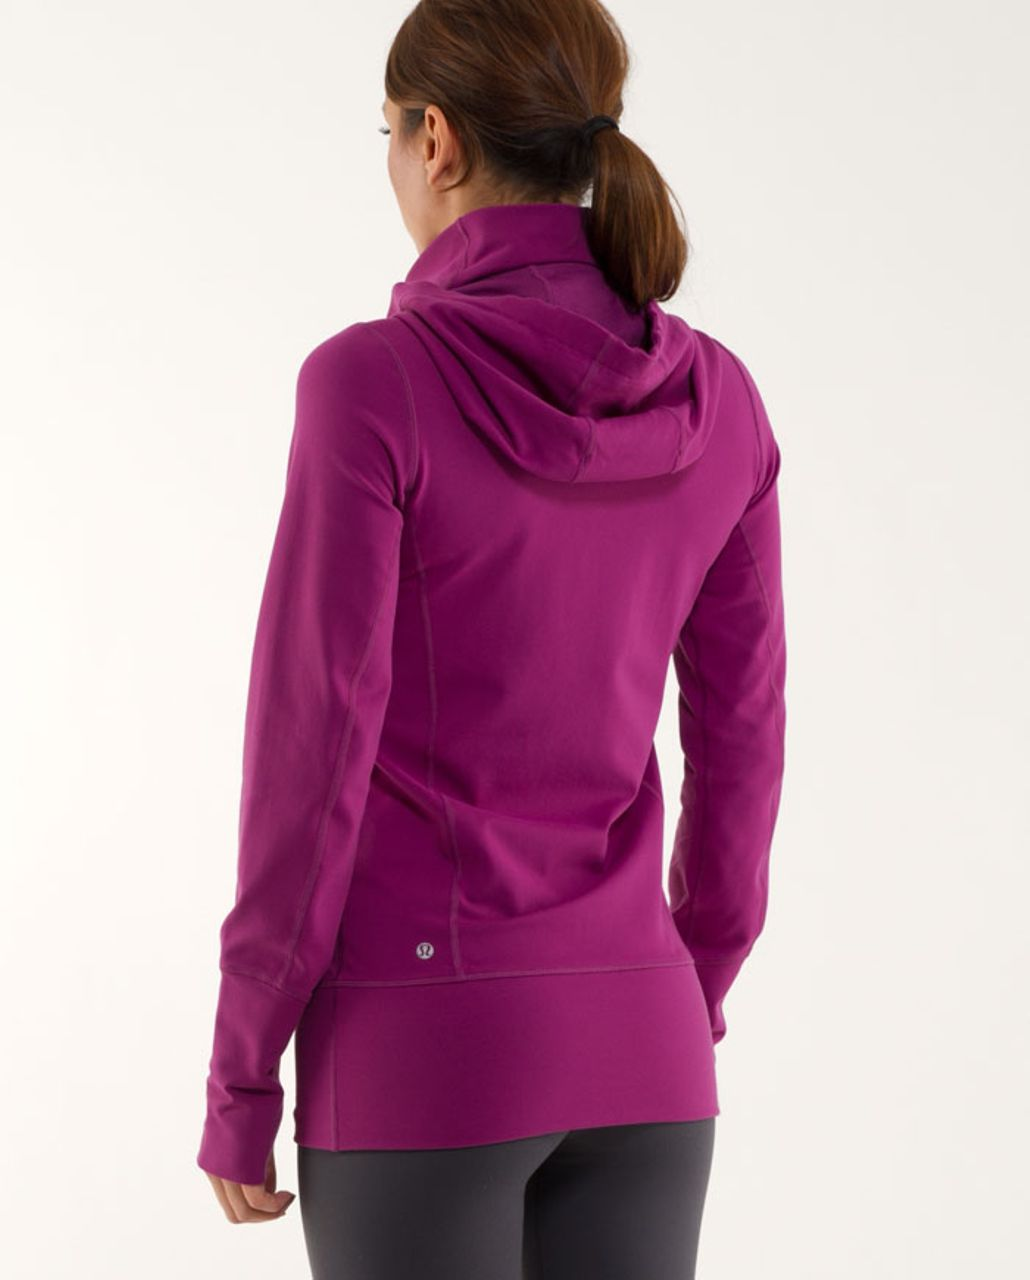 Lululemon Stride Jacket - Dew Berry